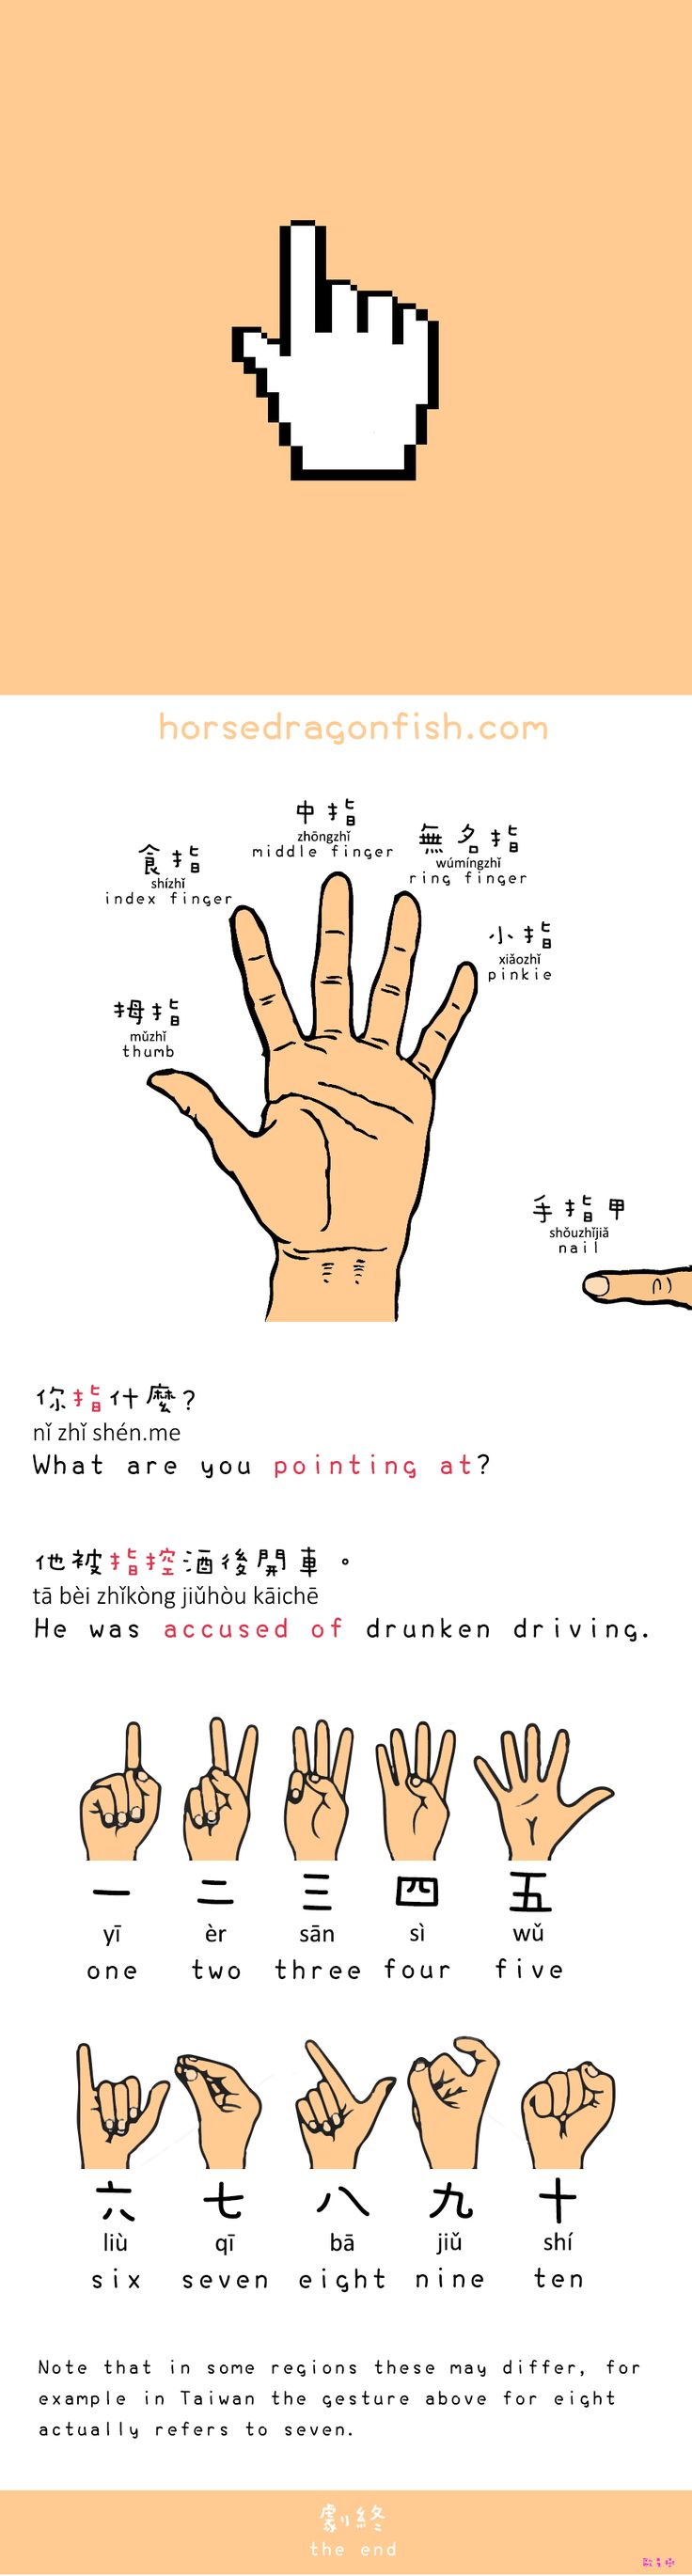 Fingers by HorseDragonFish/Chris (2012) : if you have trouble reading the characters, plain script is written at the end of the post